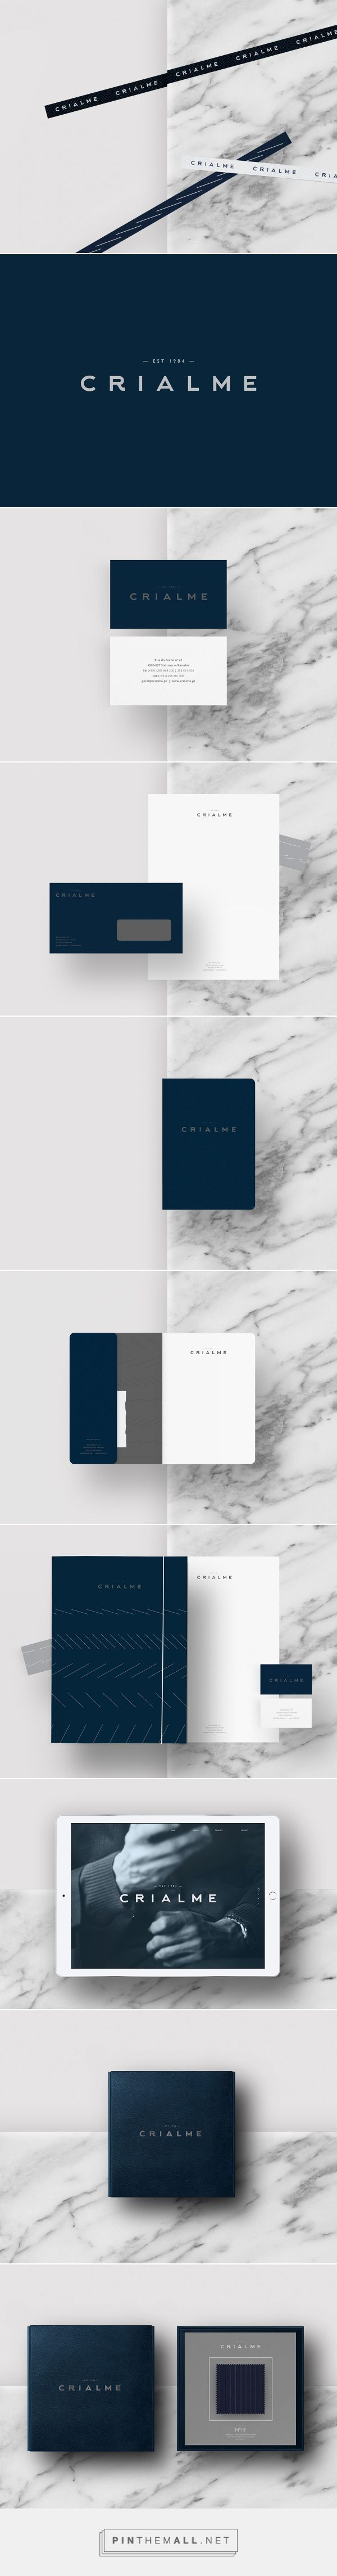 Crialme High-Quality Garment Production Branding by Bullseye | Fivestar Branding Agency – Design and Branding Agency & Curated Inspiration Gallery